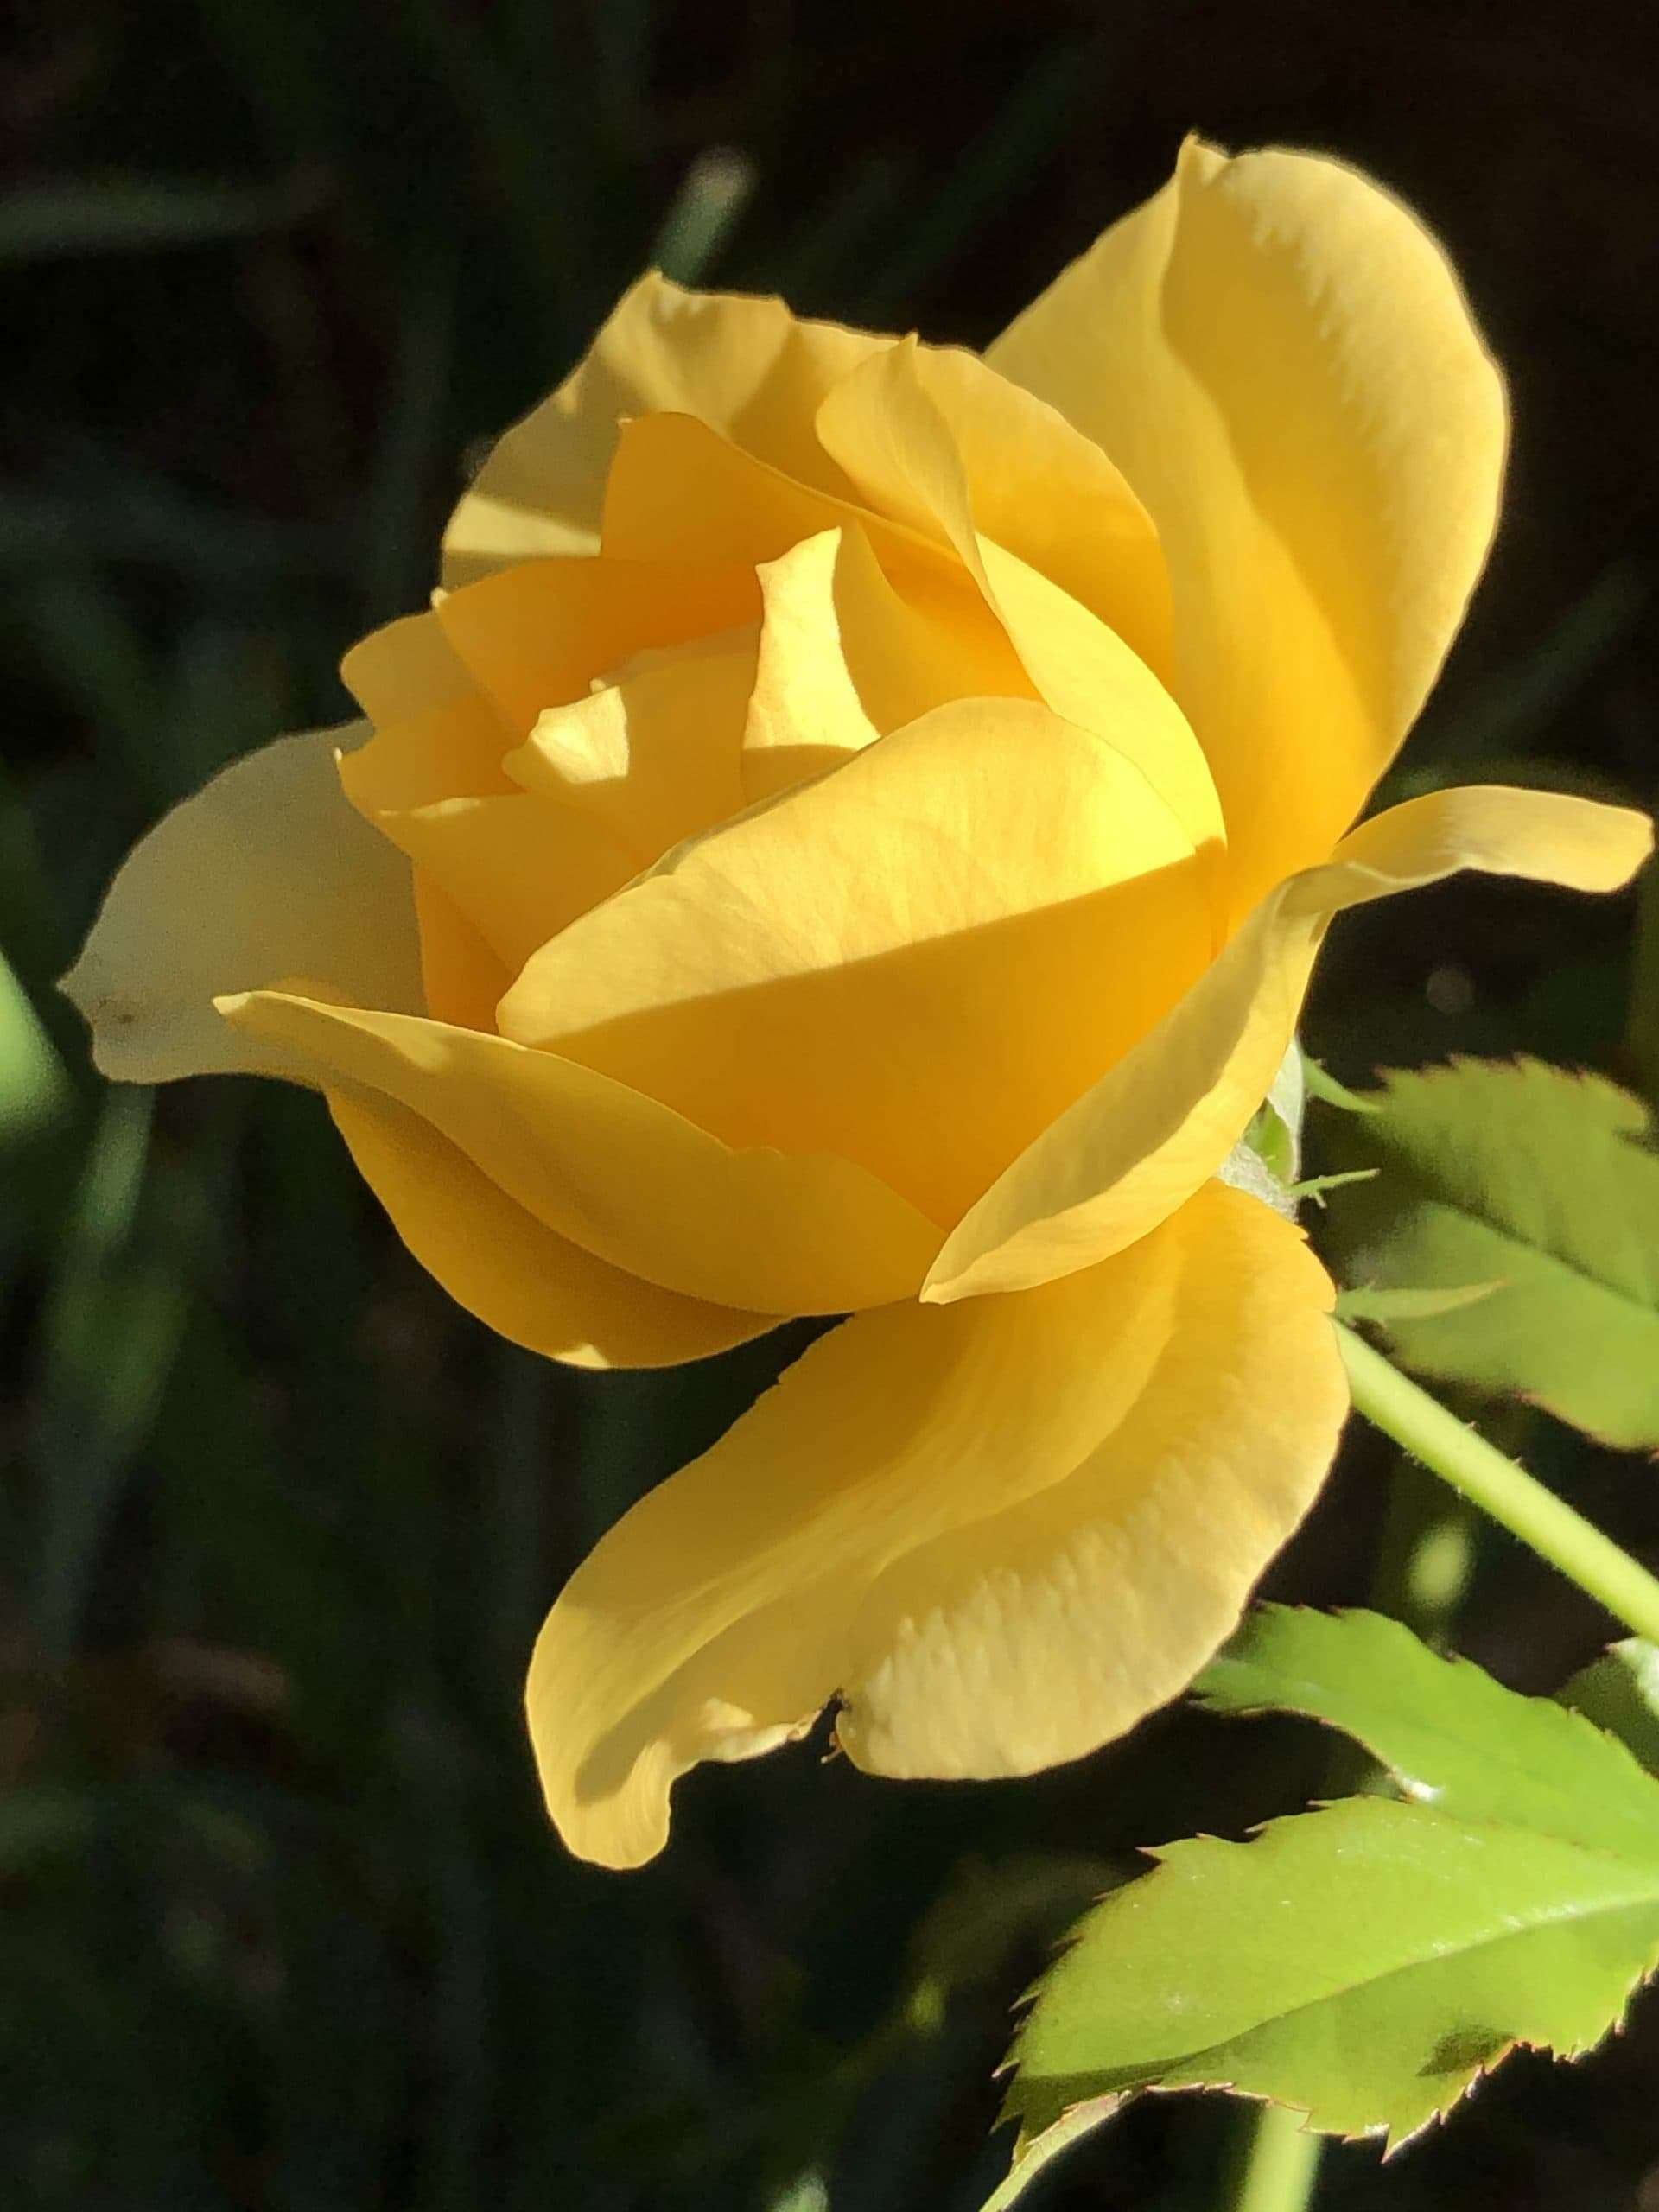 Happiness Month - A photo of a yellow rose